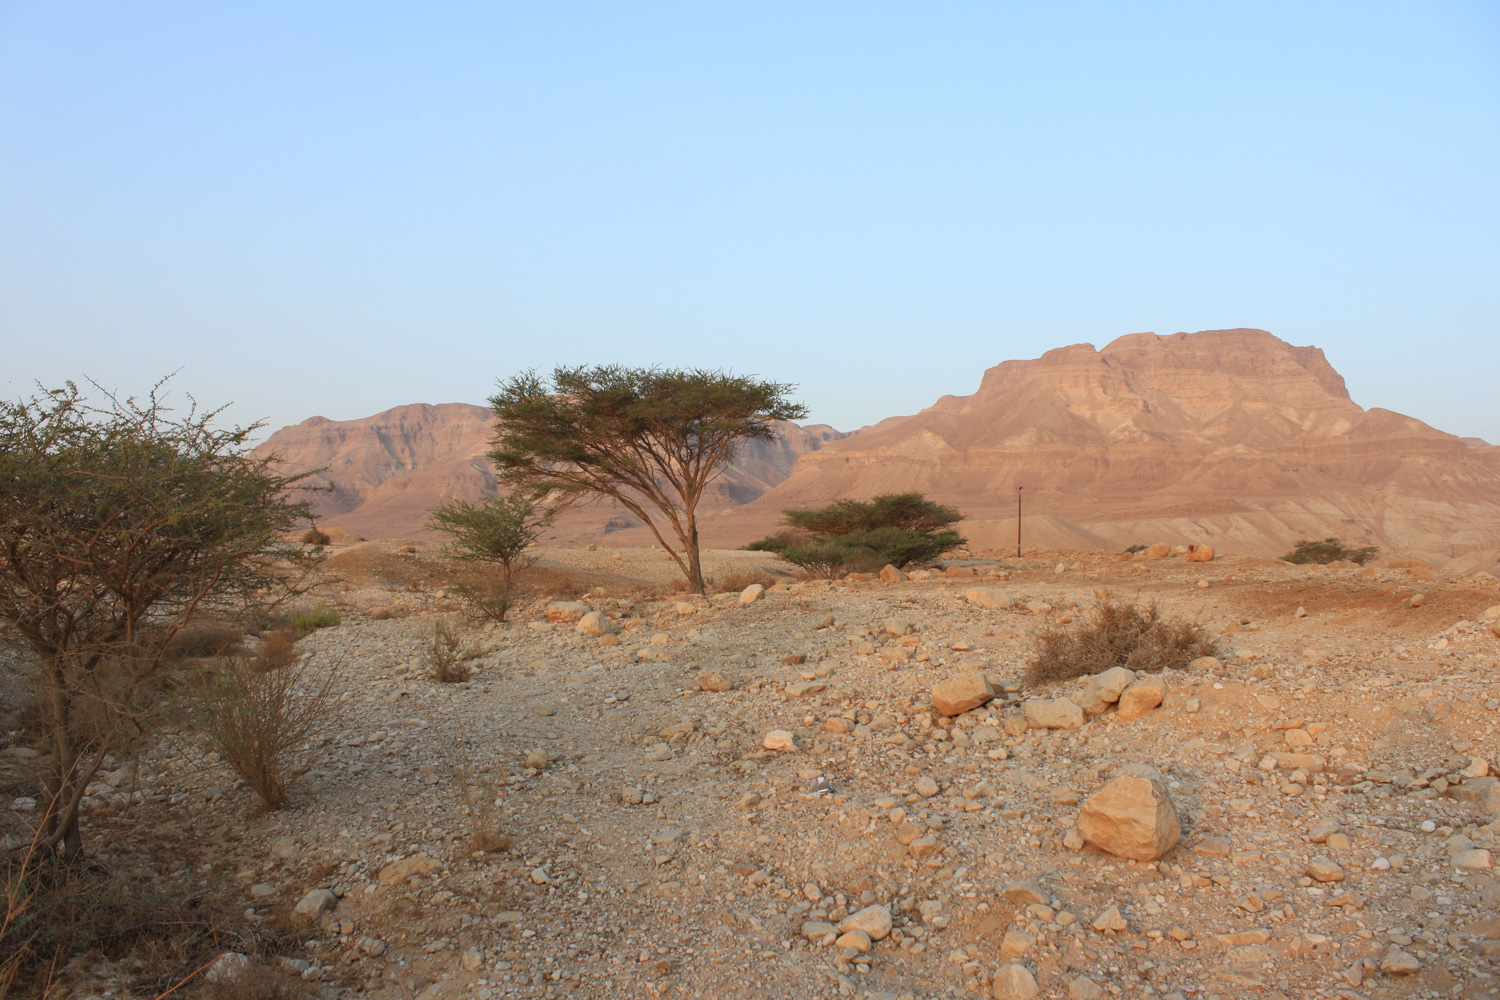 Desert with mountain in background and several shrubs and trees